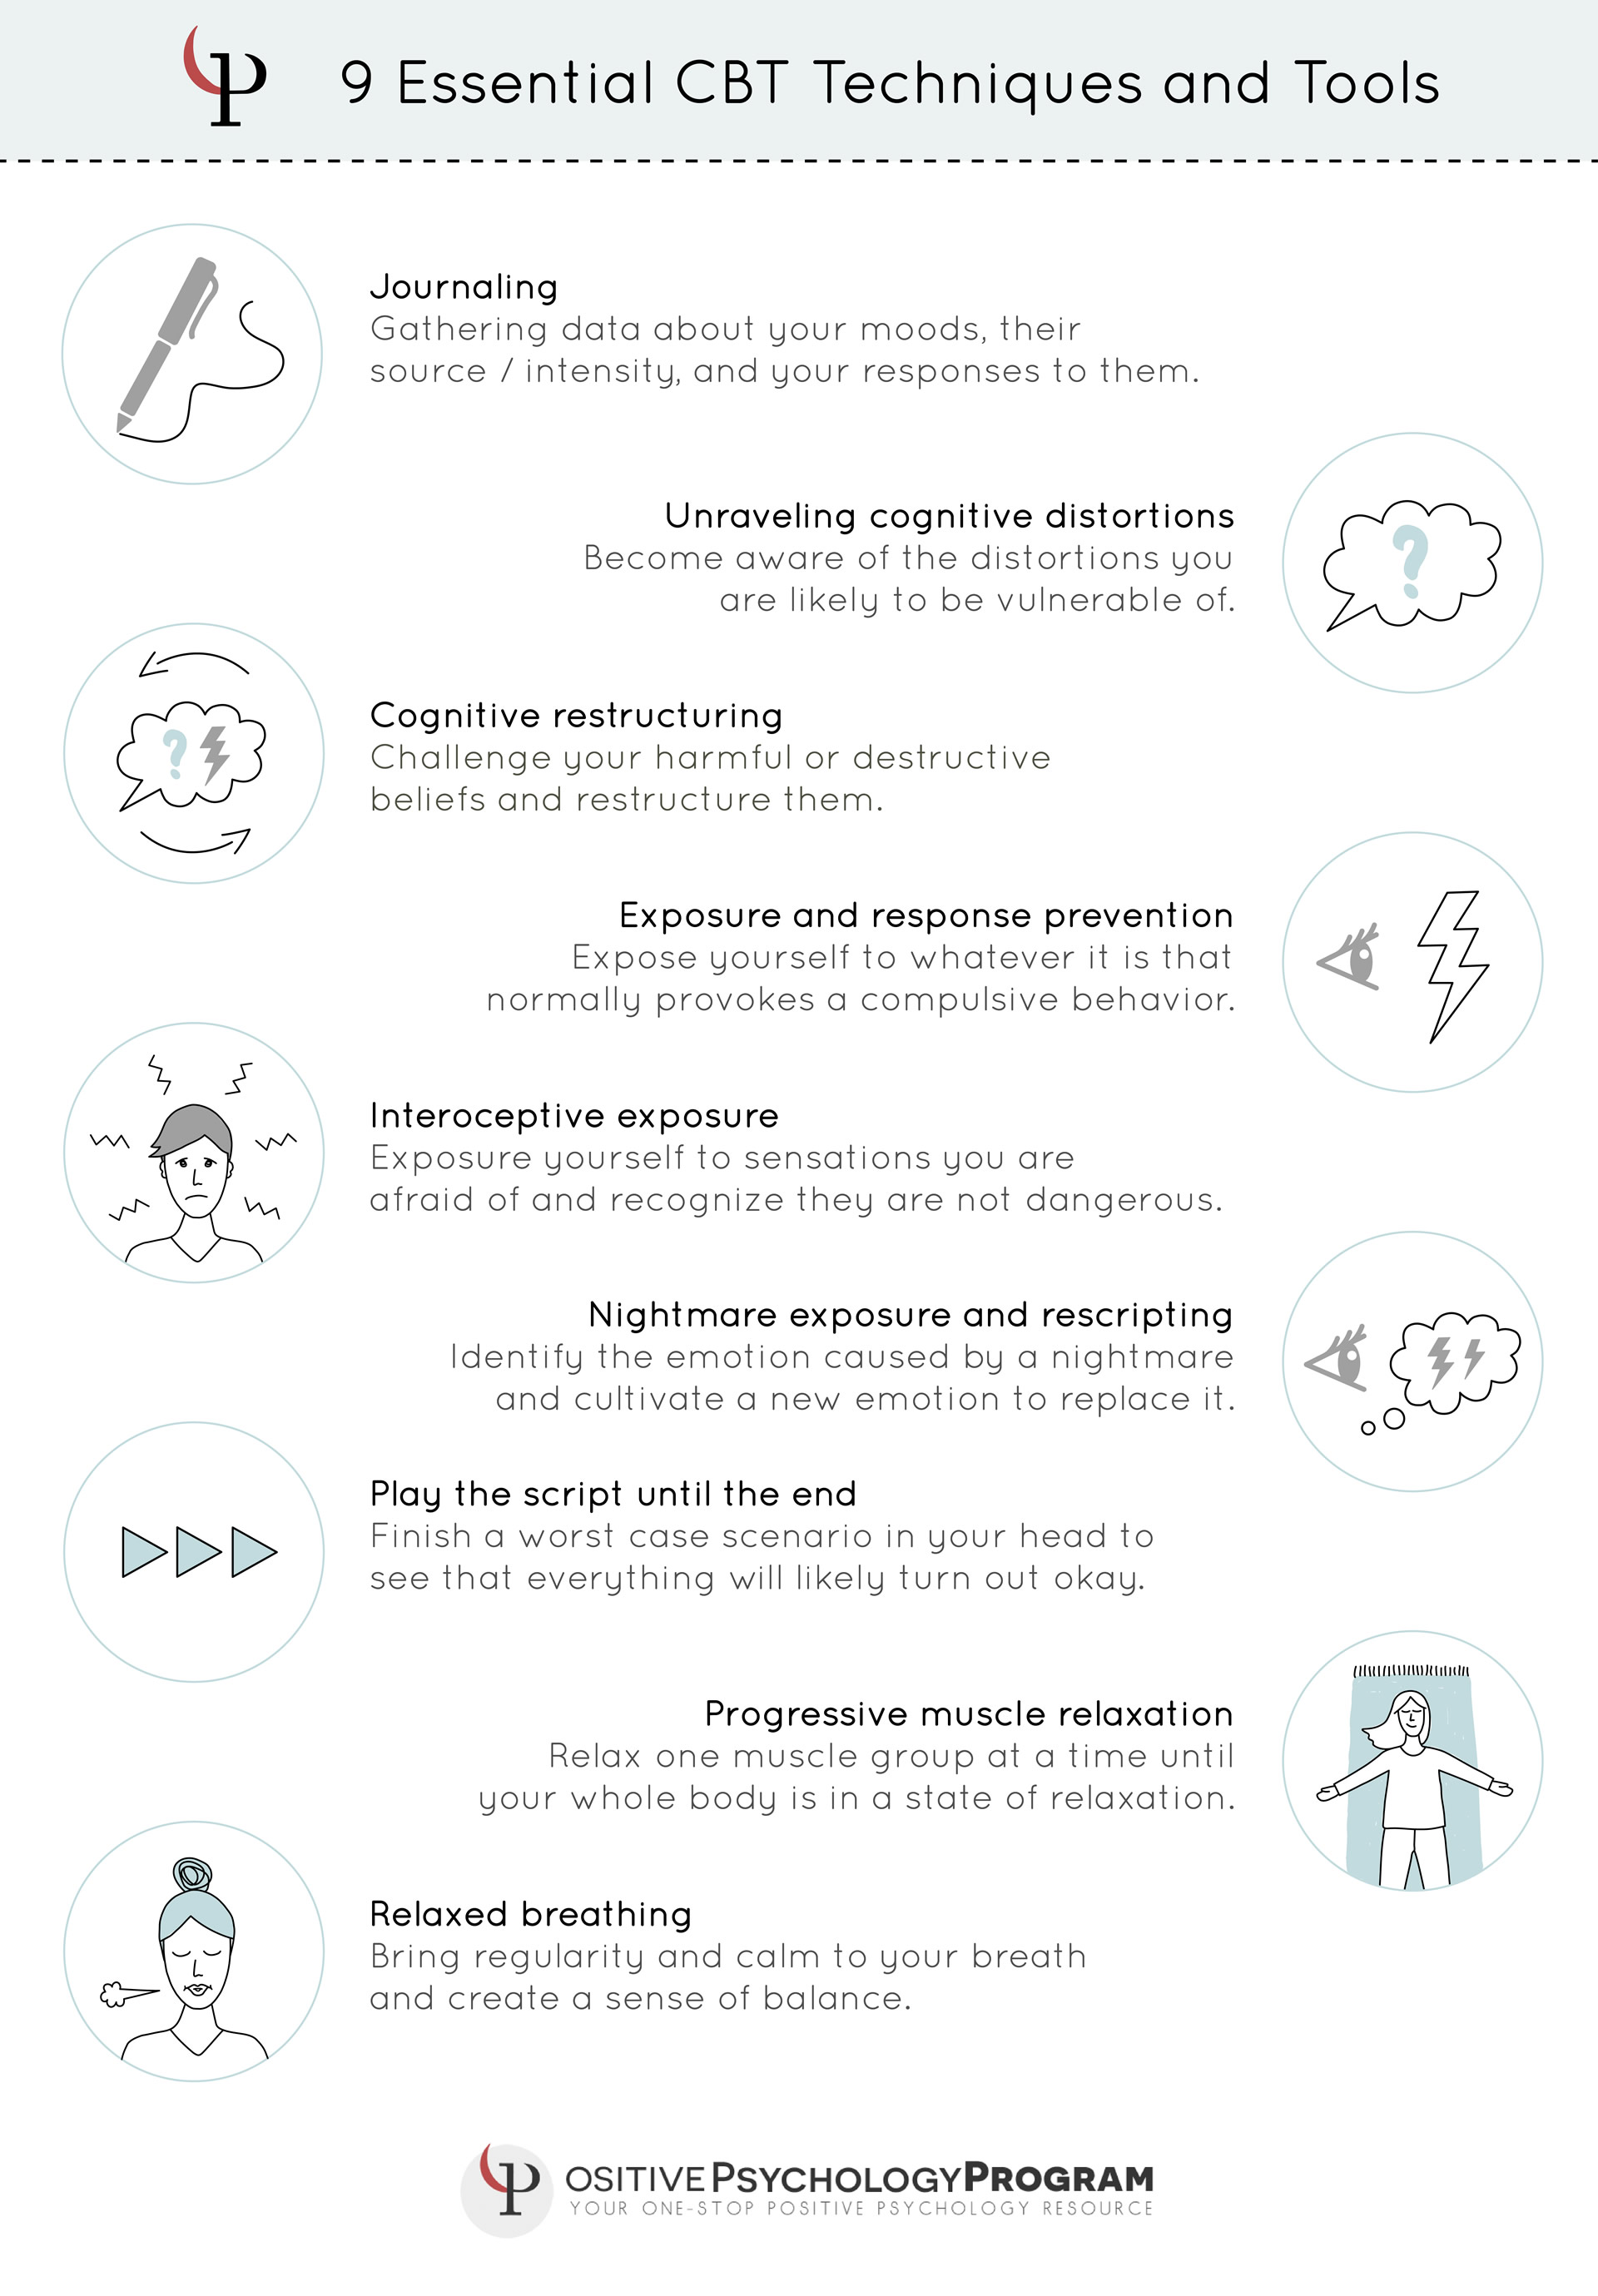 worksheet Cbt Worksheets 25 cbt techniques and worksheets for cognitive behavioral therapy 9 essential tools infographic